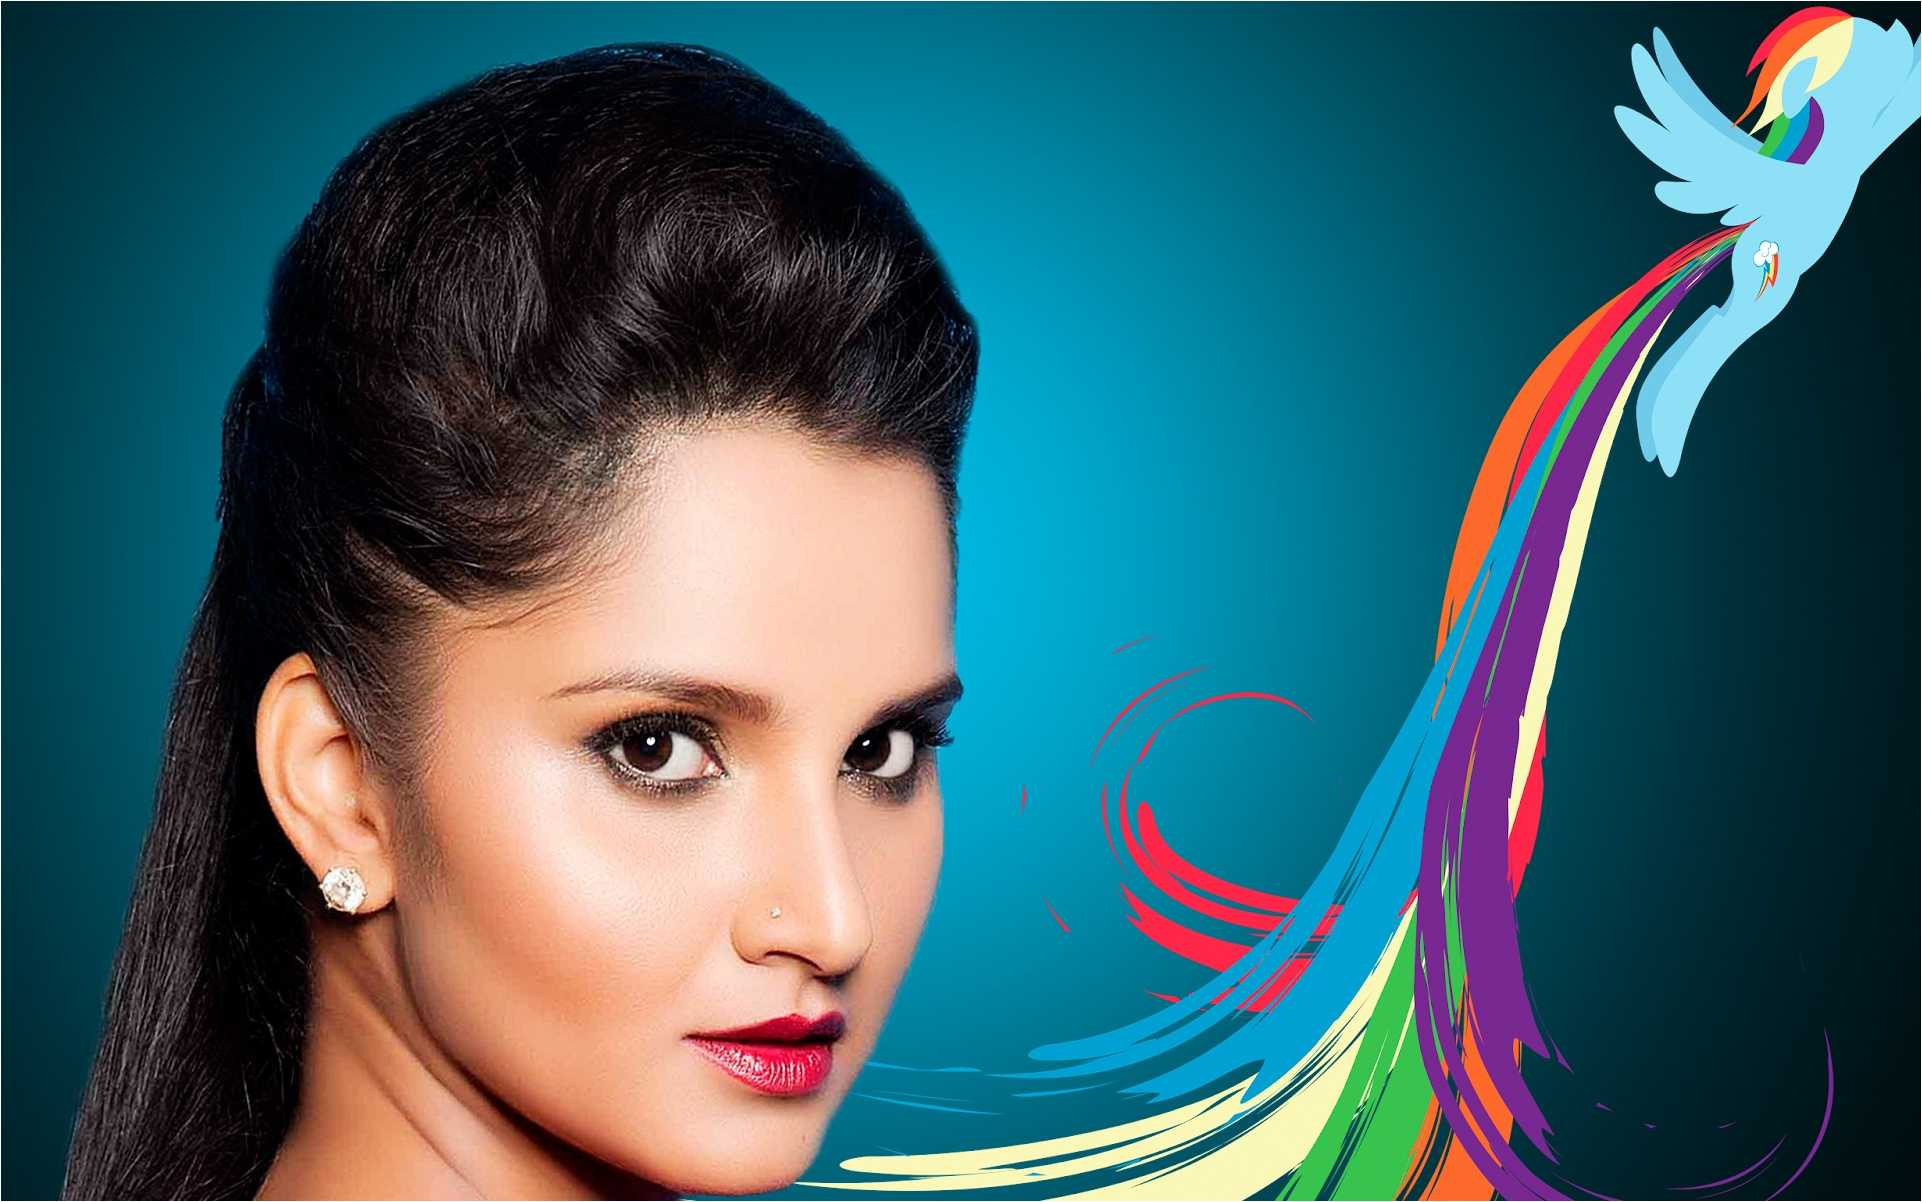 100% Quality Hd Amazing Sania Mirza Backgrounds Hd - Graphic Design , HD Wallpaper & Backgrounds